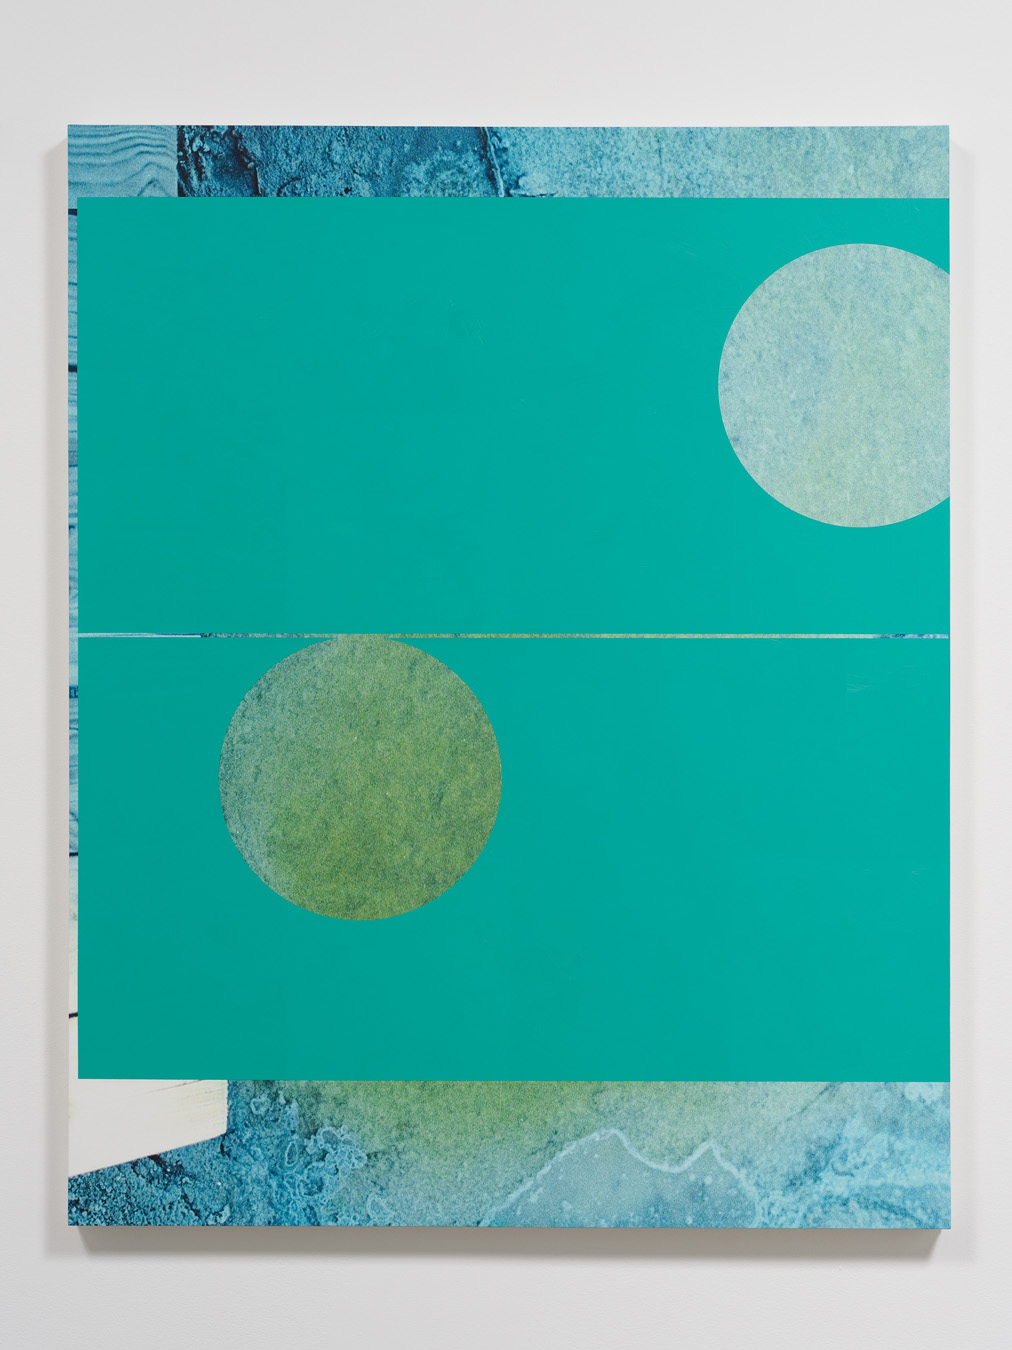 Salton Sea (dock), 2012  Oil and UV cured ink on canvas over panel  60 x 48 inches  152.4 x 121.92 cm